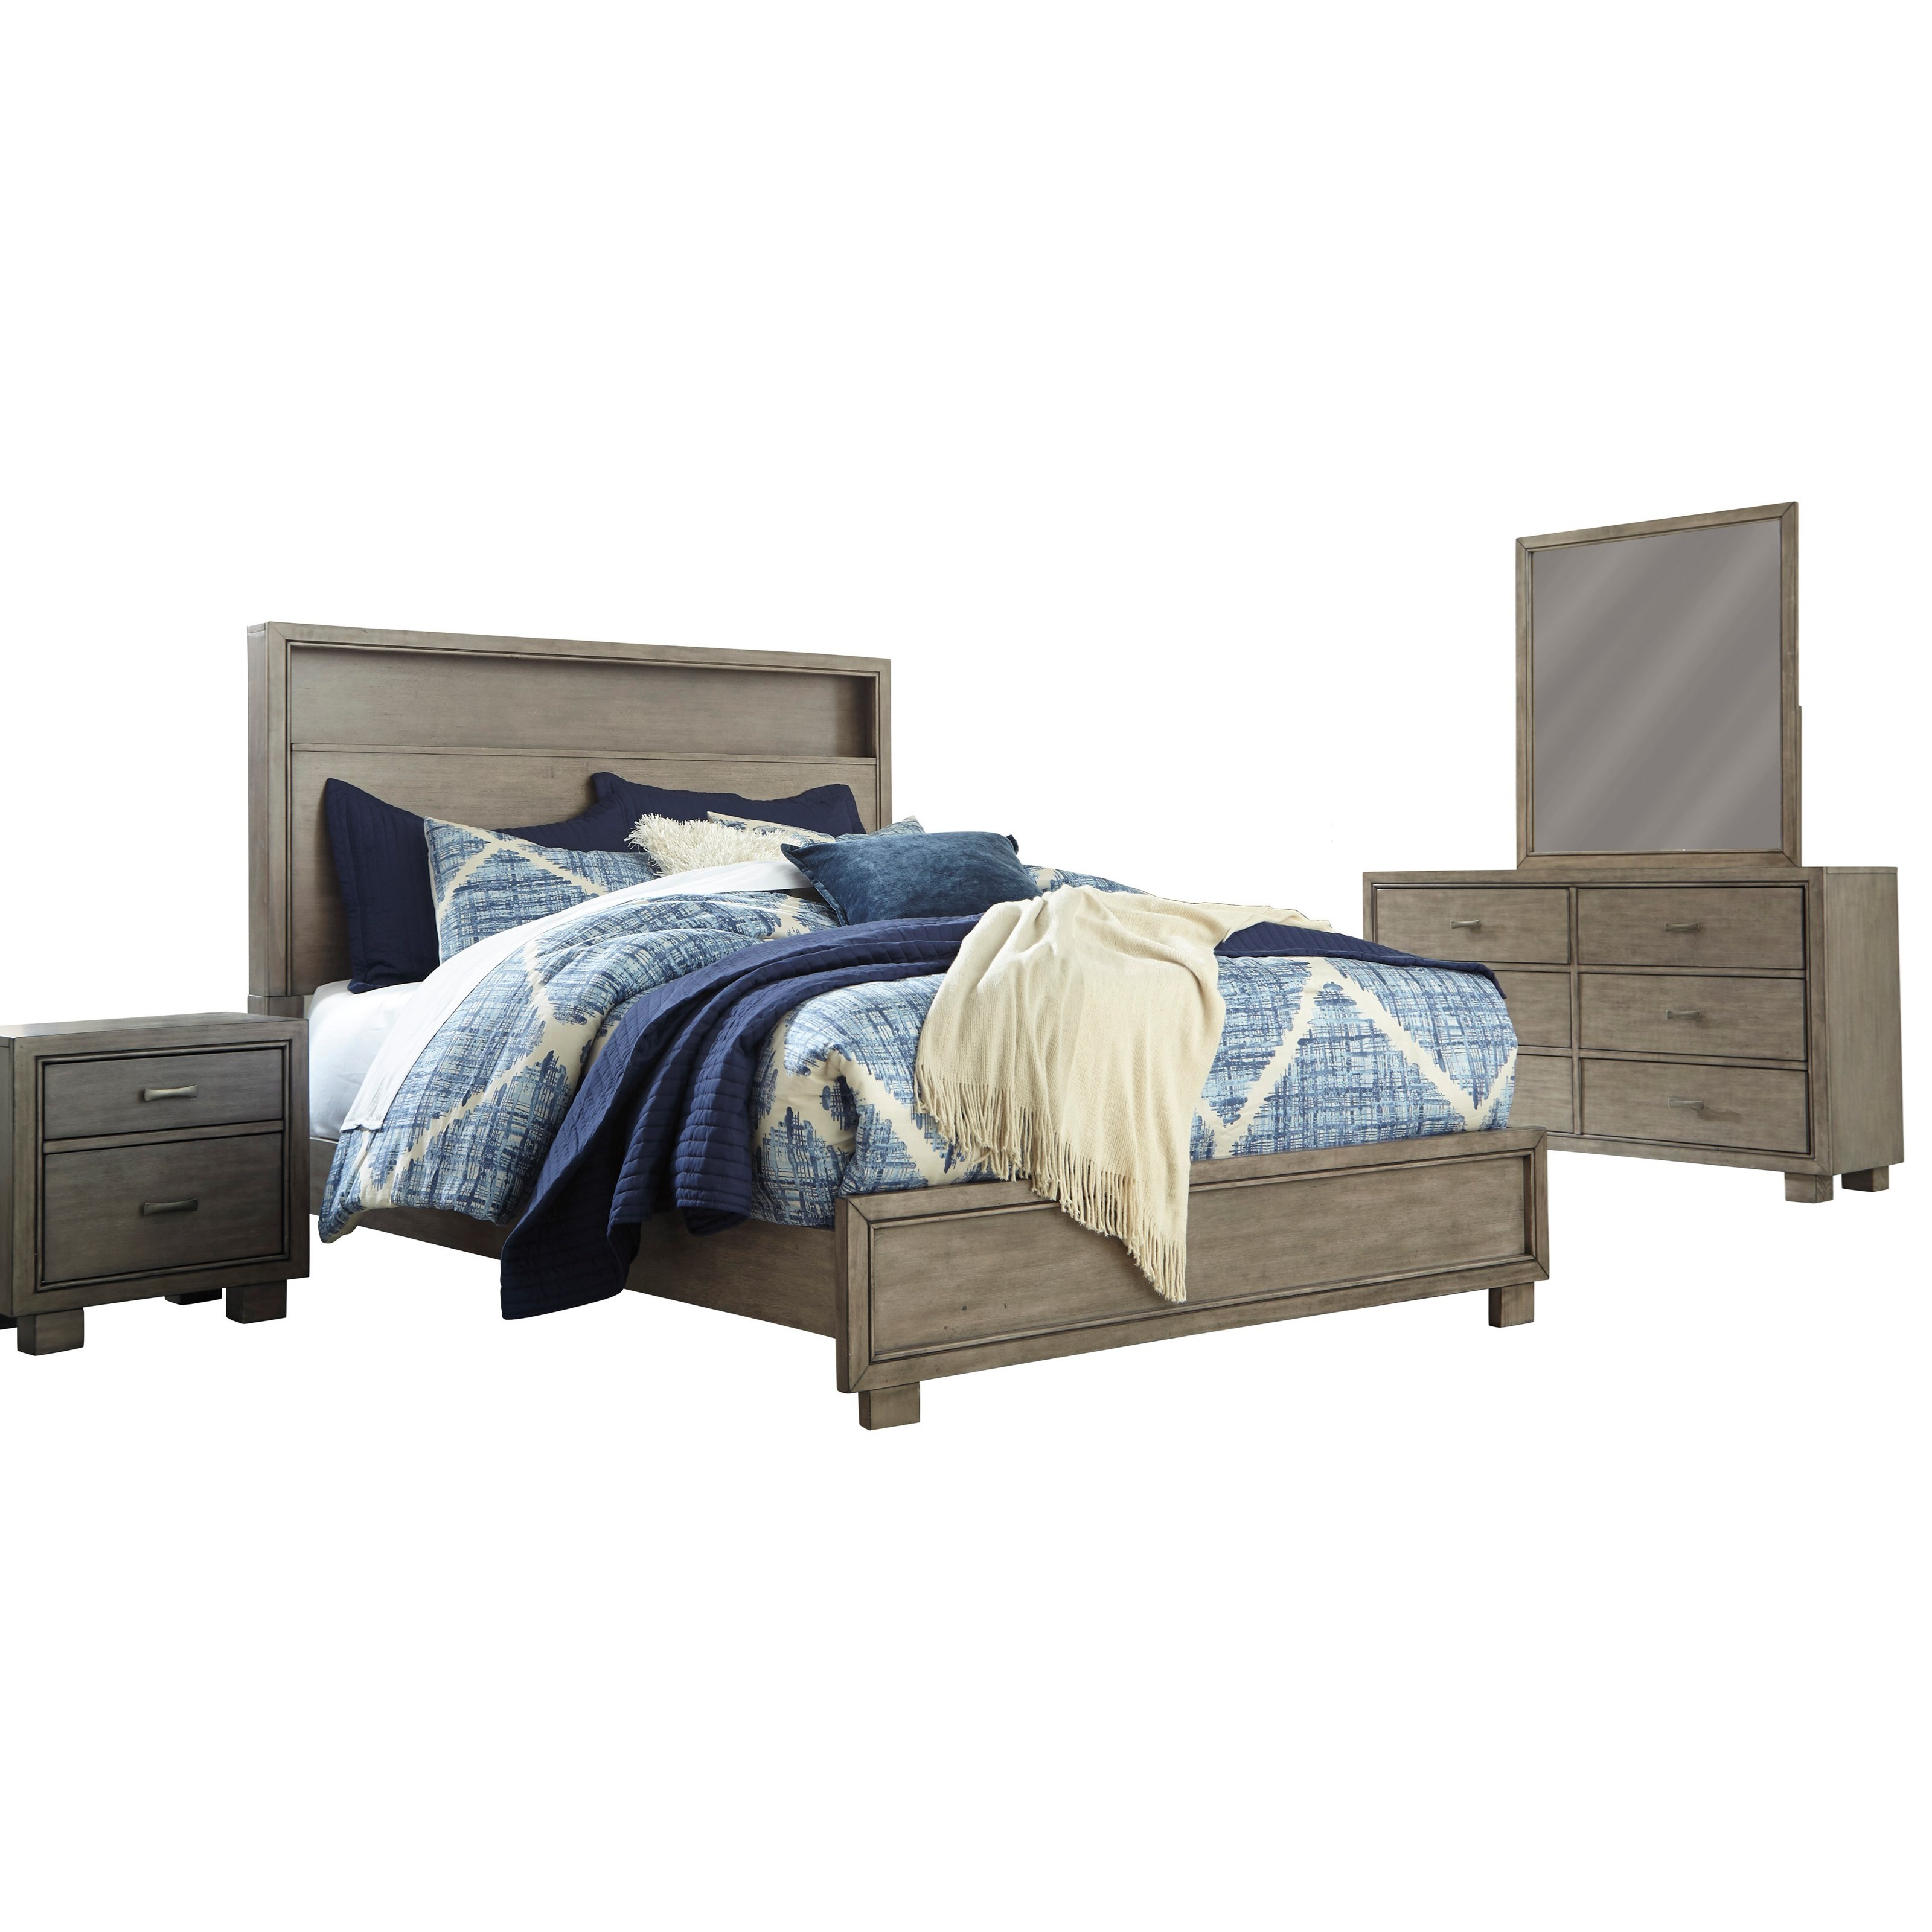 Arnett Queen Bedroom Group by Signature Design by Ashley at Furniture and ApplianceMart